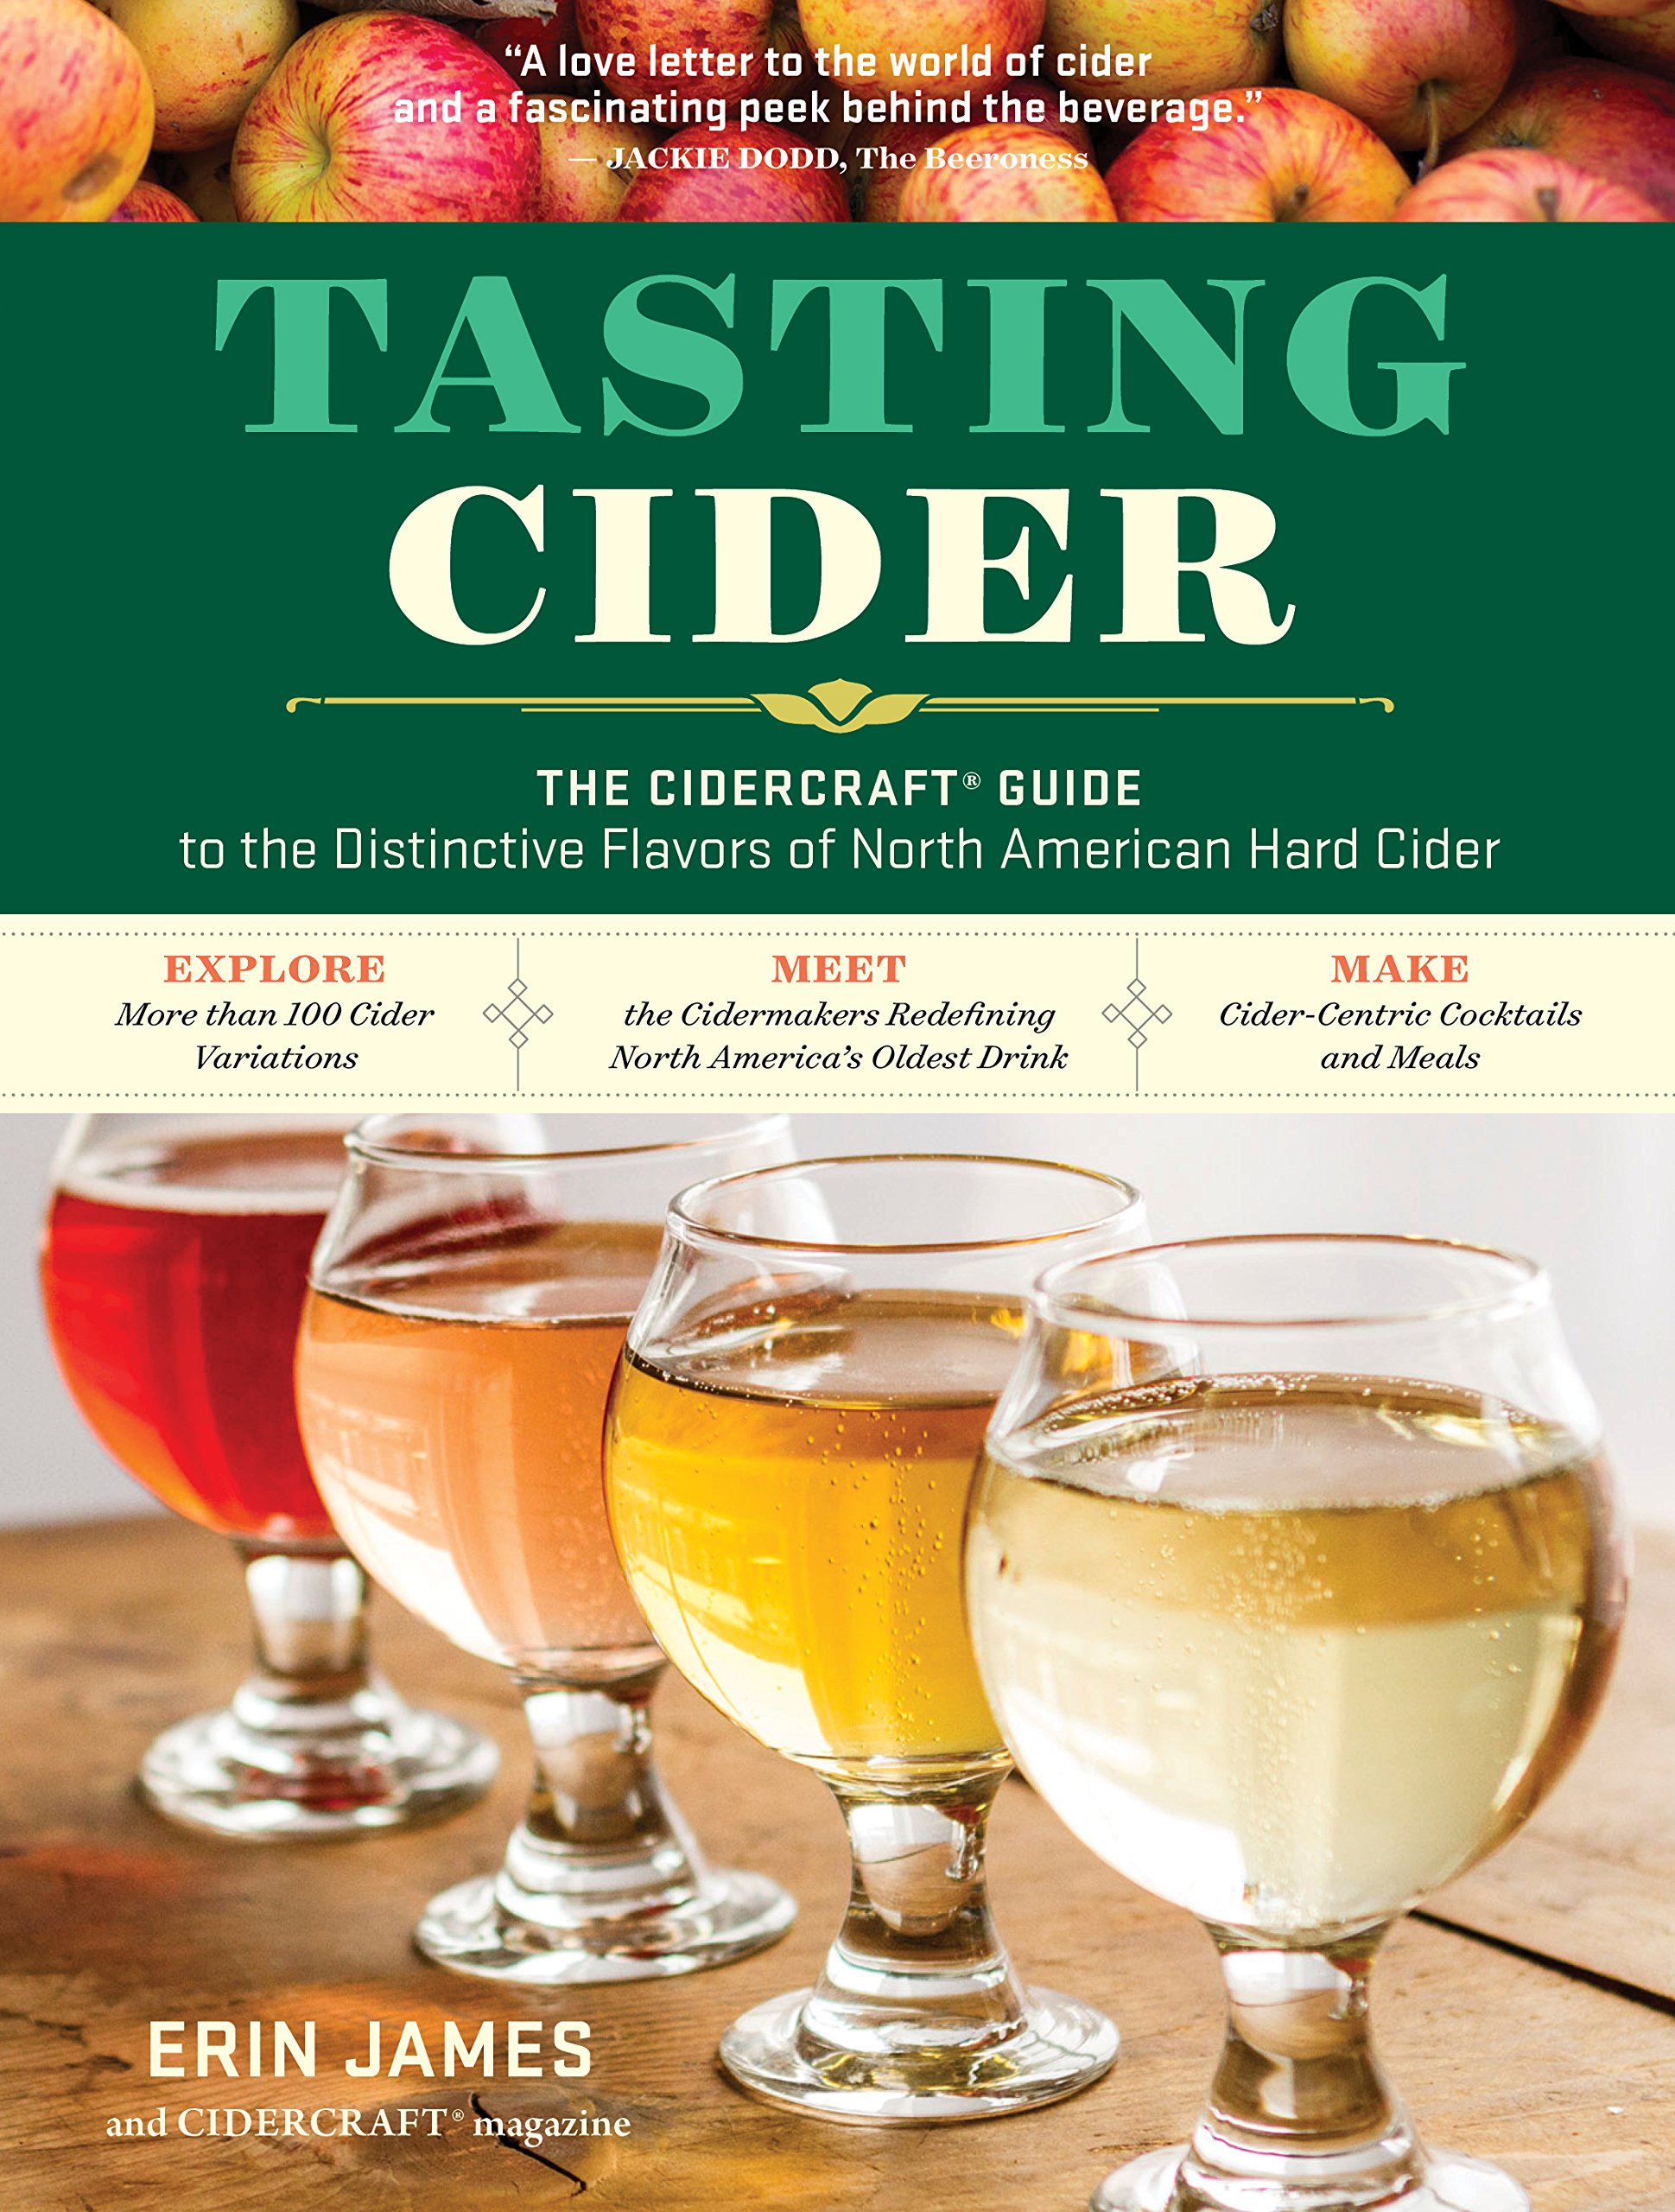 Tasting Cider  The CIDERCRAFT® Guide To The Distinctive Flavors Of North American Hard Cider  English Edition